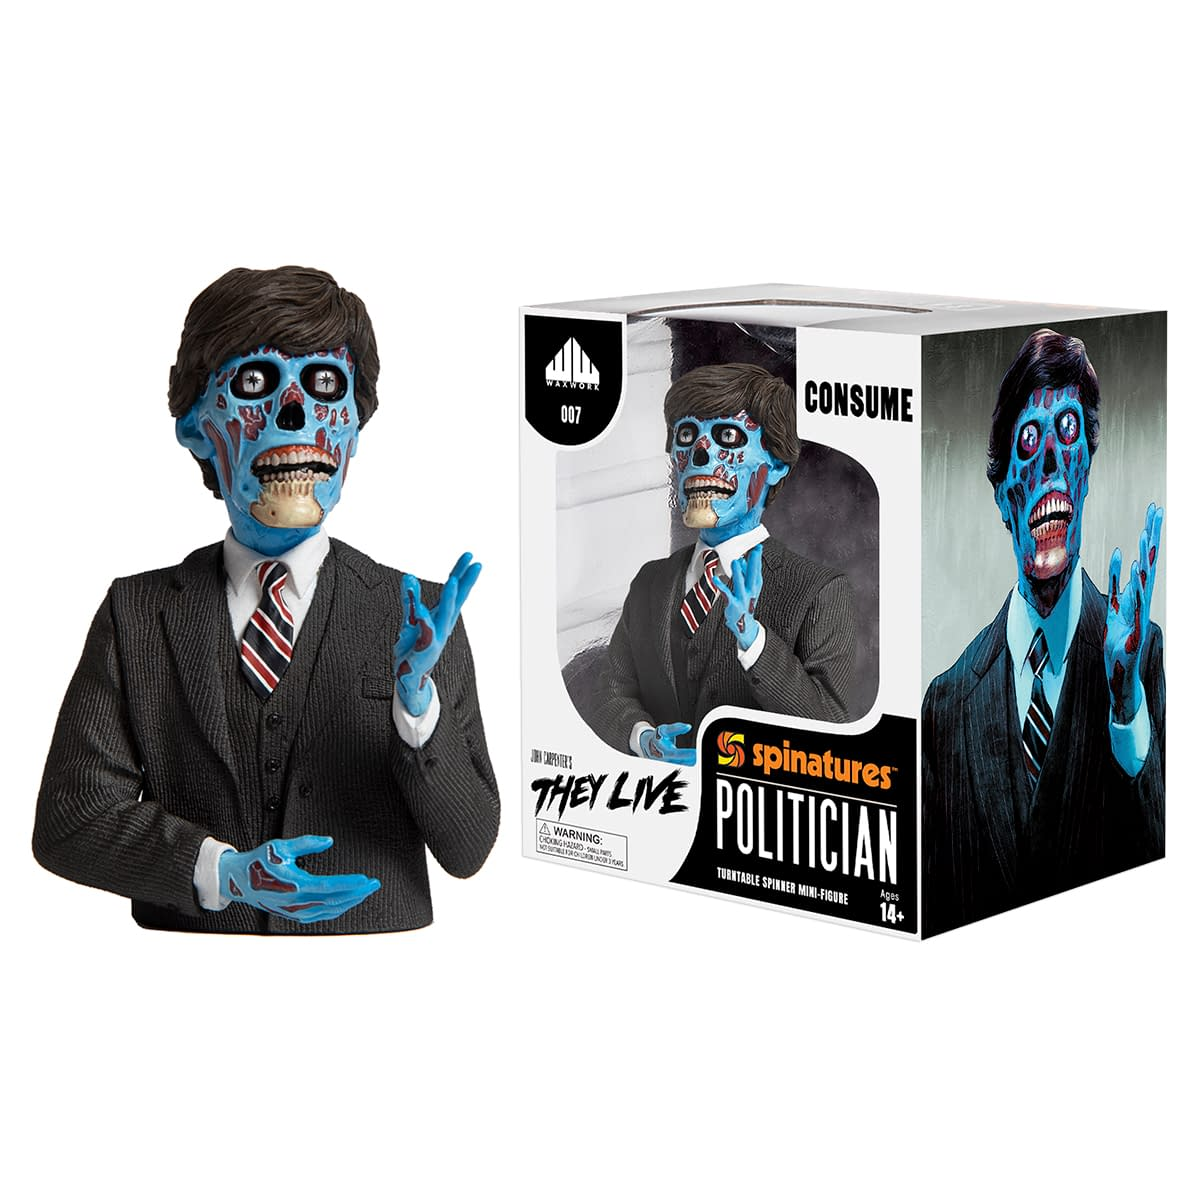 They Live Spinatures Figure Up For Order Now At Waxwork Records